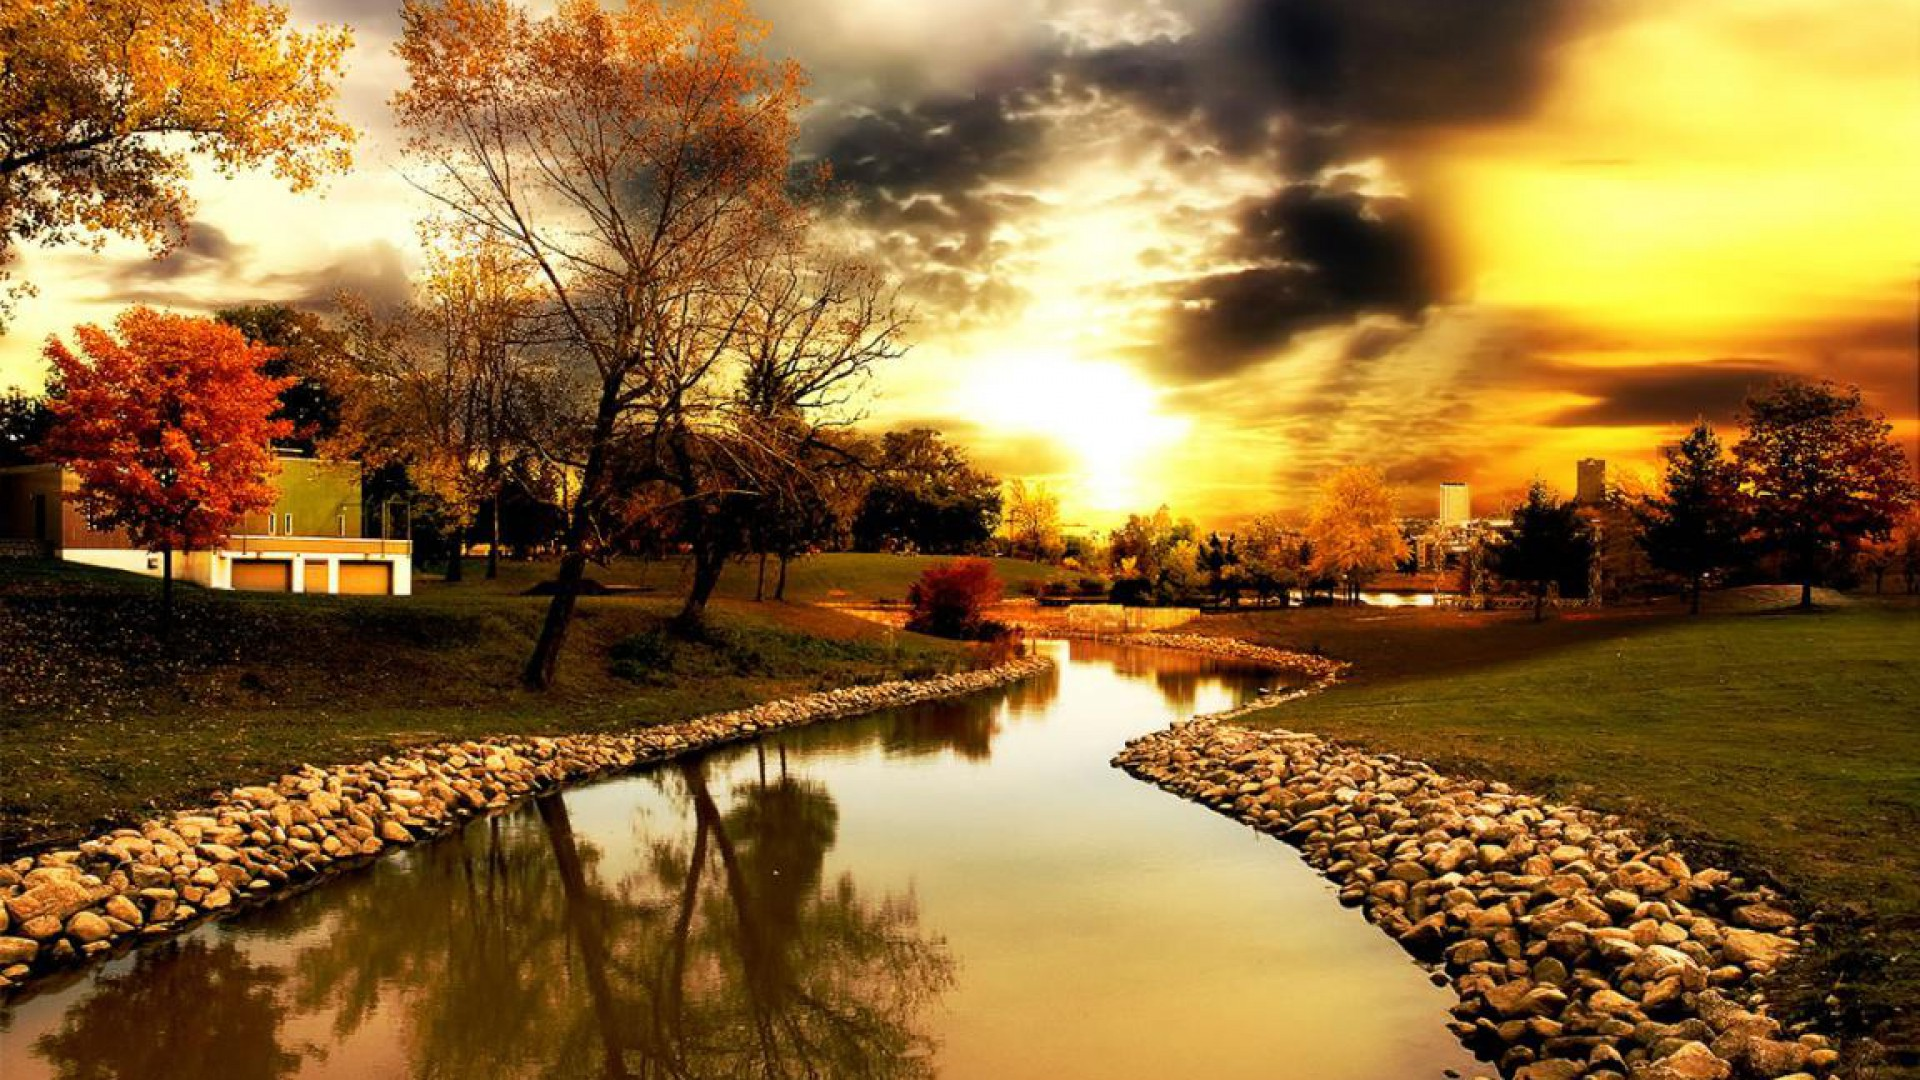 Autumn-Free-Download-wallpaper-wp6002154